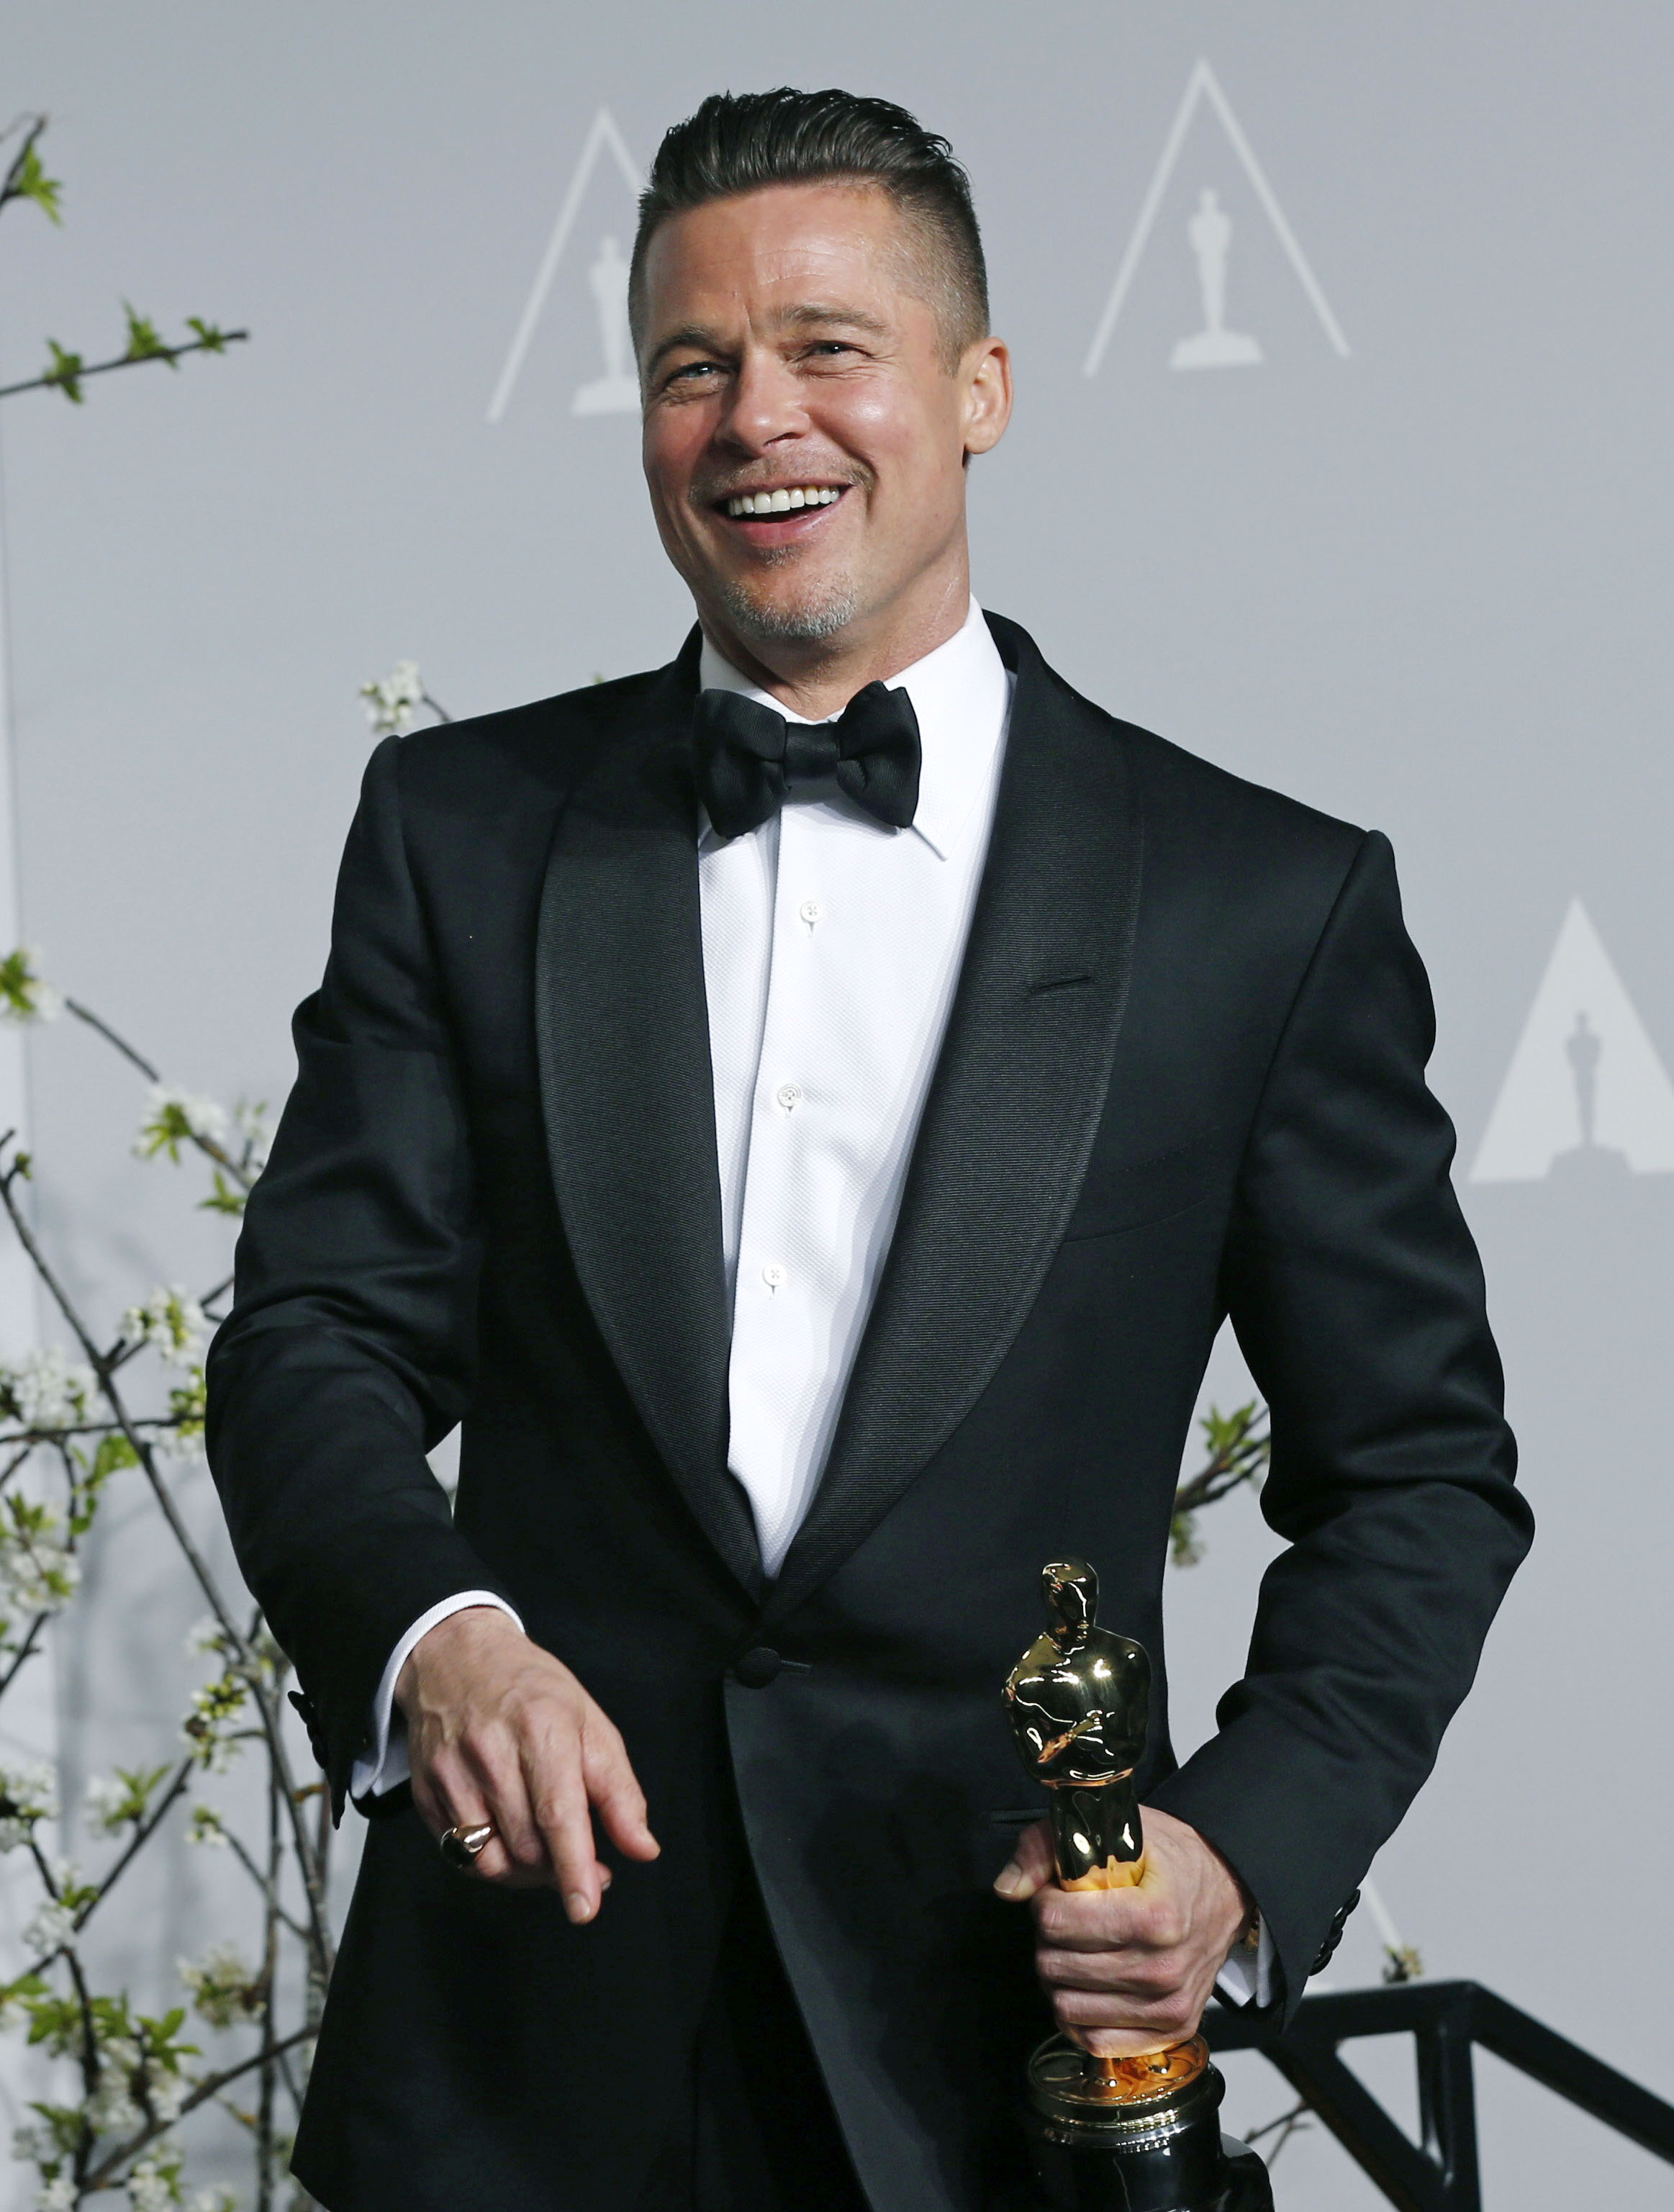 Brad Pitt at the 86th Academy Awards in Hollywood on March 2, 2014 after winning best picture for  12 Years a Slave .